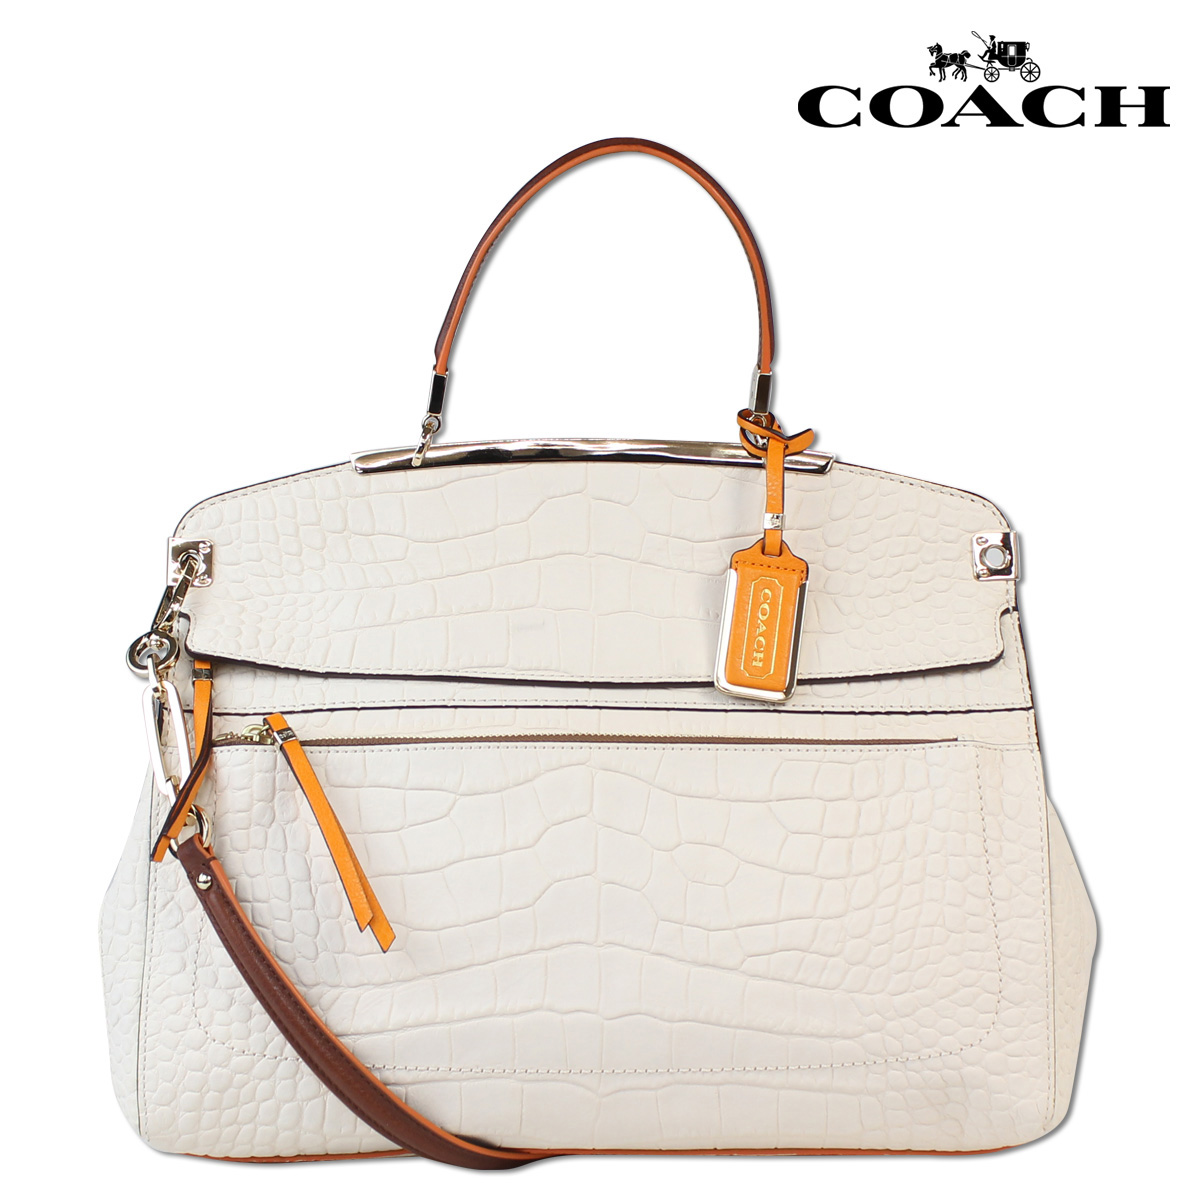 Coach Women S Boutique Products Handbags 2 Way Bag 30 225 Brushed Madison Pinnacle Embossed Croco Leather Top Handle Satchel